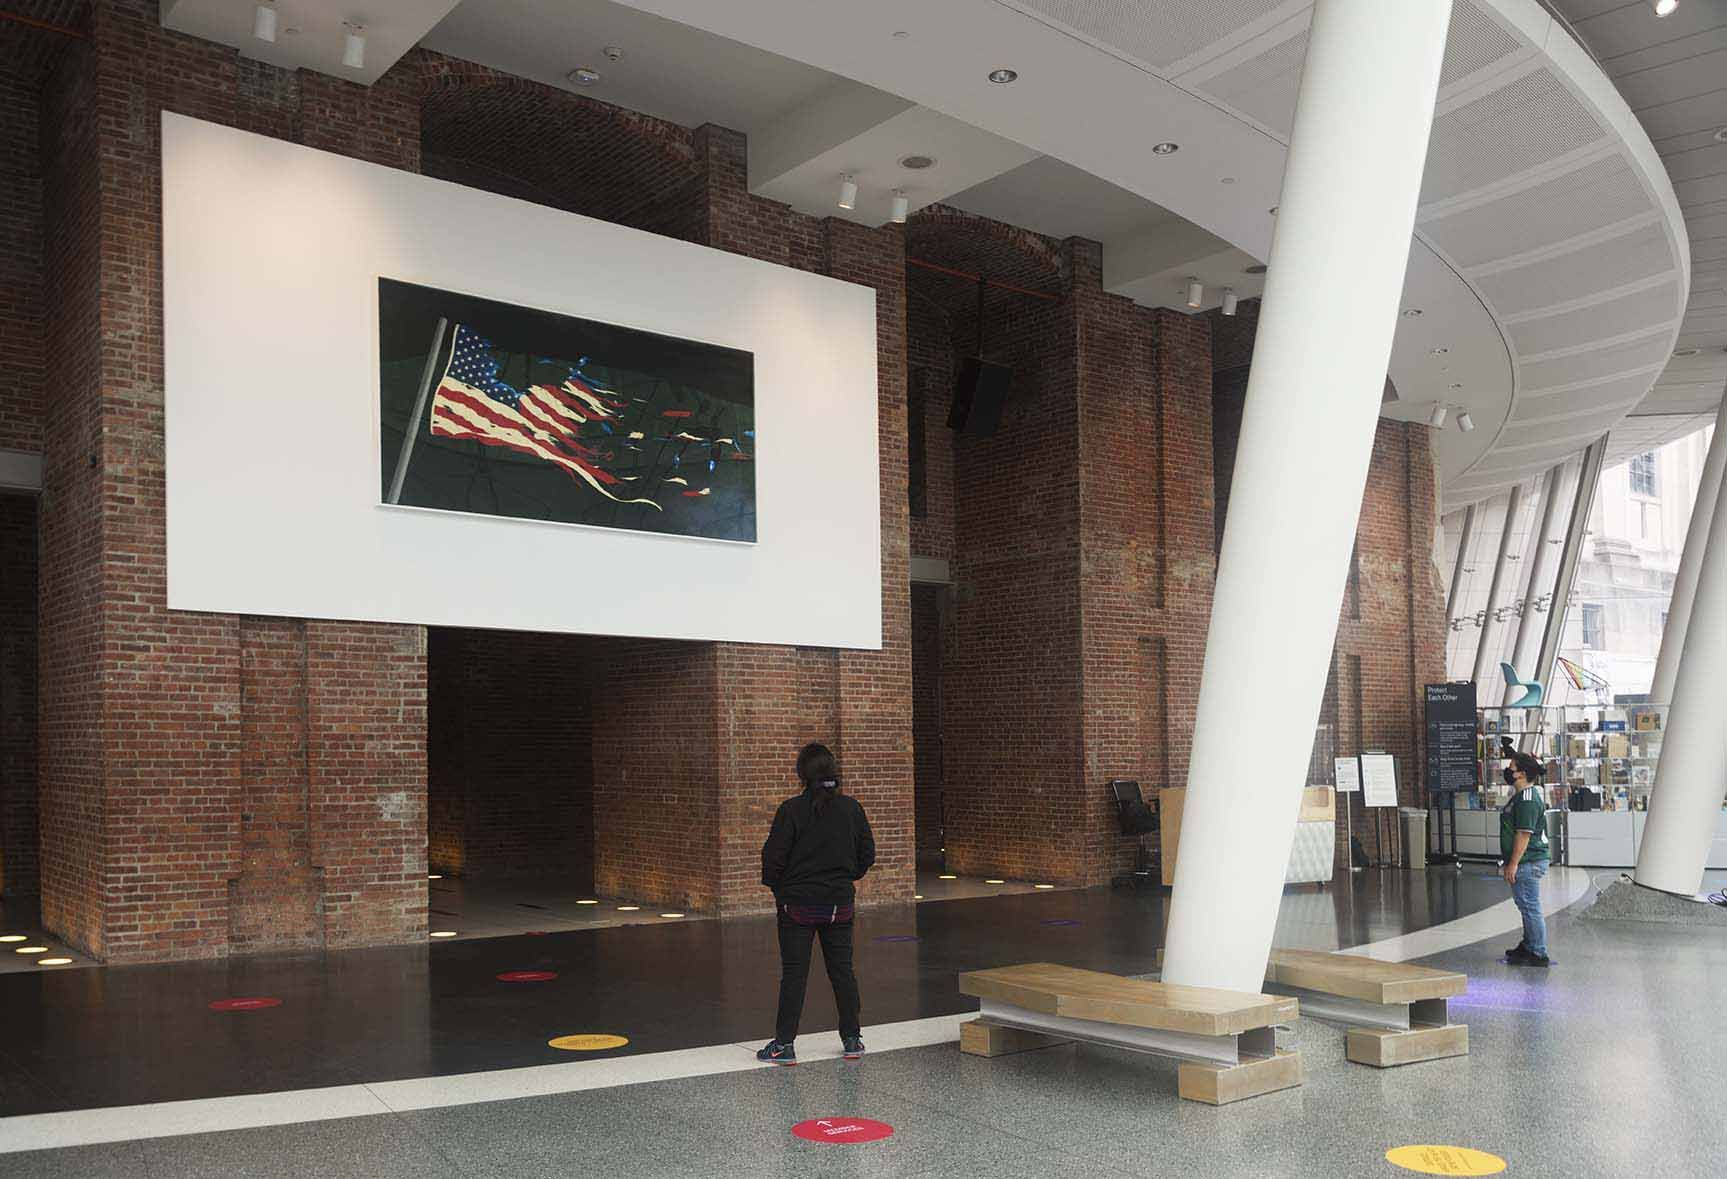 <p>Installation view of the Museum lobby featuring Ed Ruscha's painting OUR FLAG.</p>